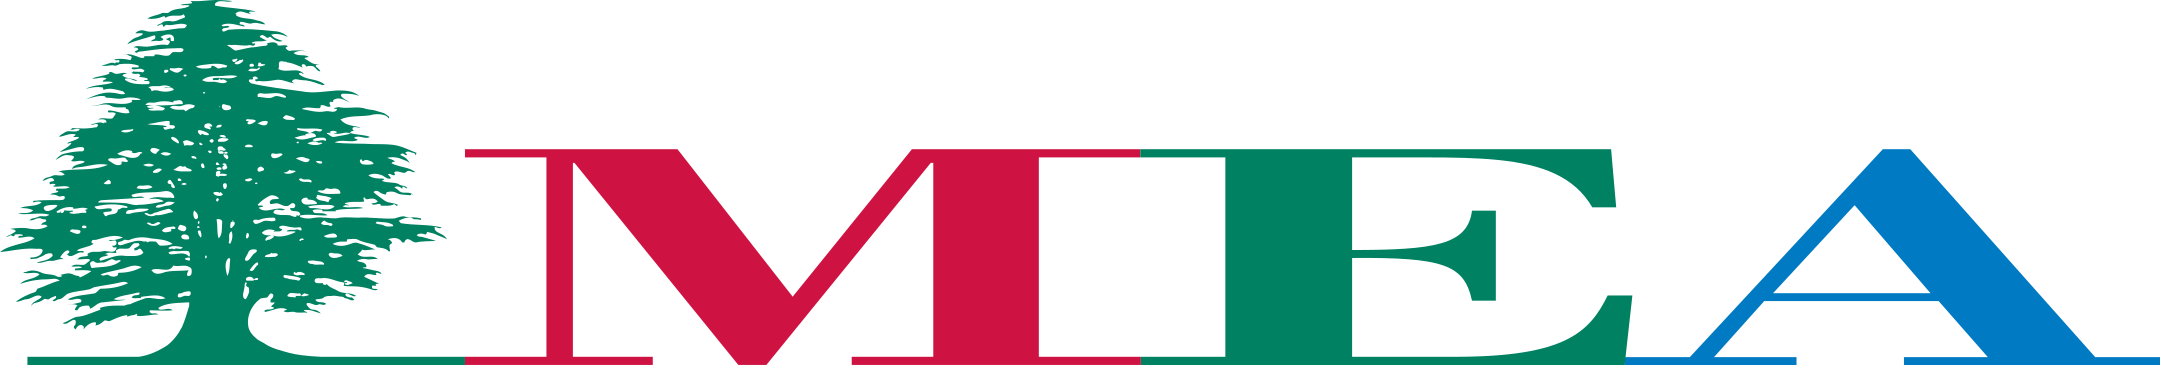 middle east airlines 1 - Middle East Airlines Logo